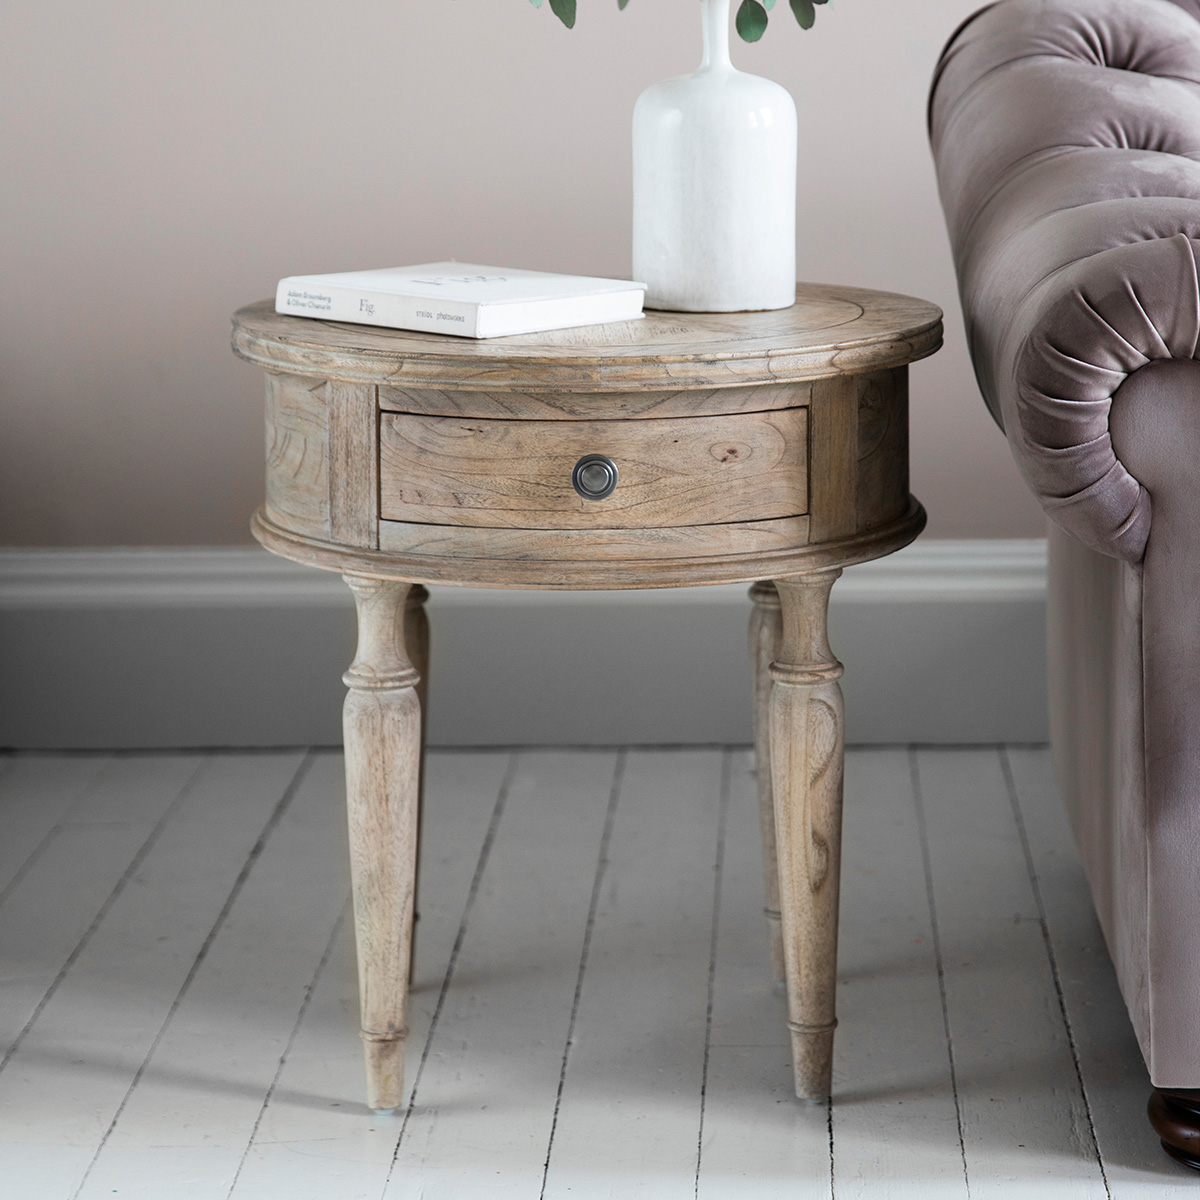 French Colonial round side table at FADS.co.uk